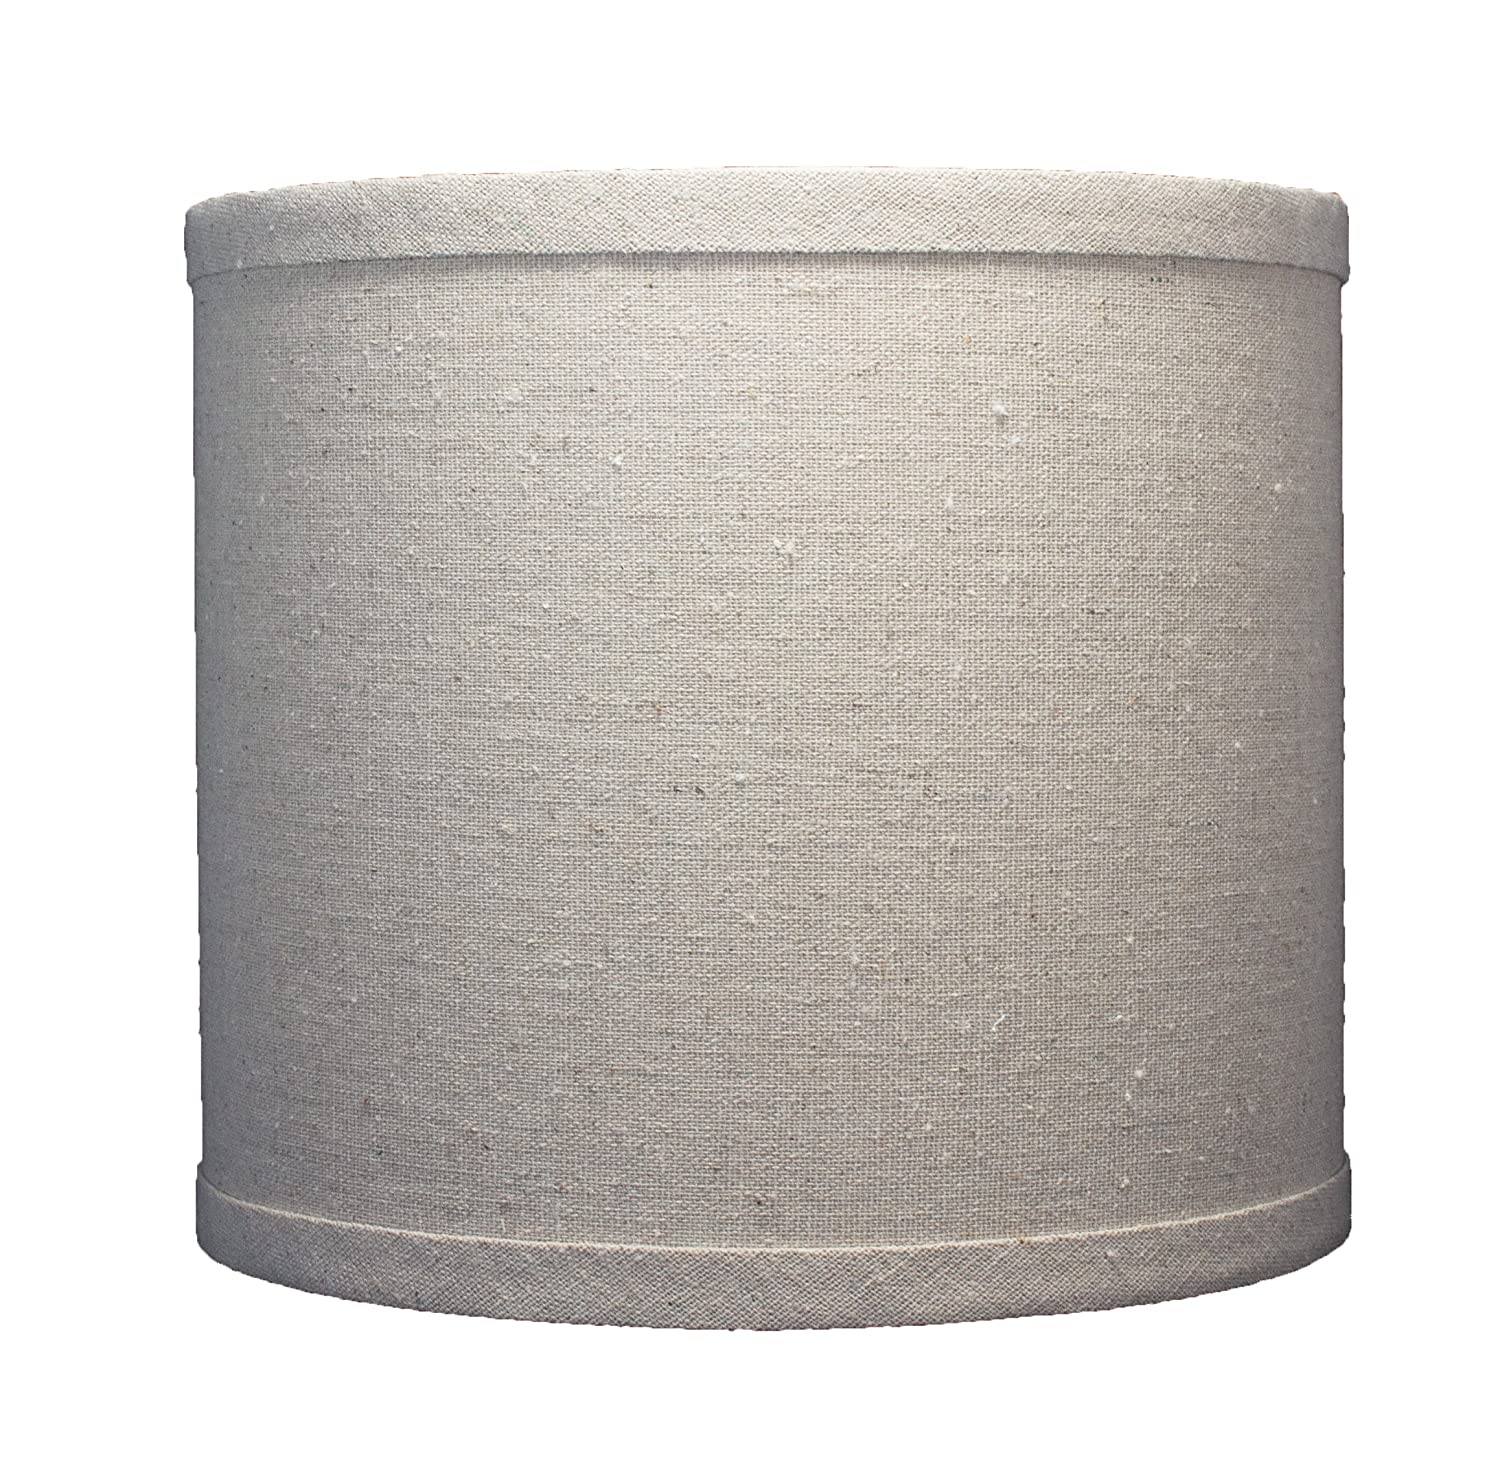 Urbanest Linen Drum Lamp Shade, 8-inch By 8-inch By 7-inch ...